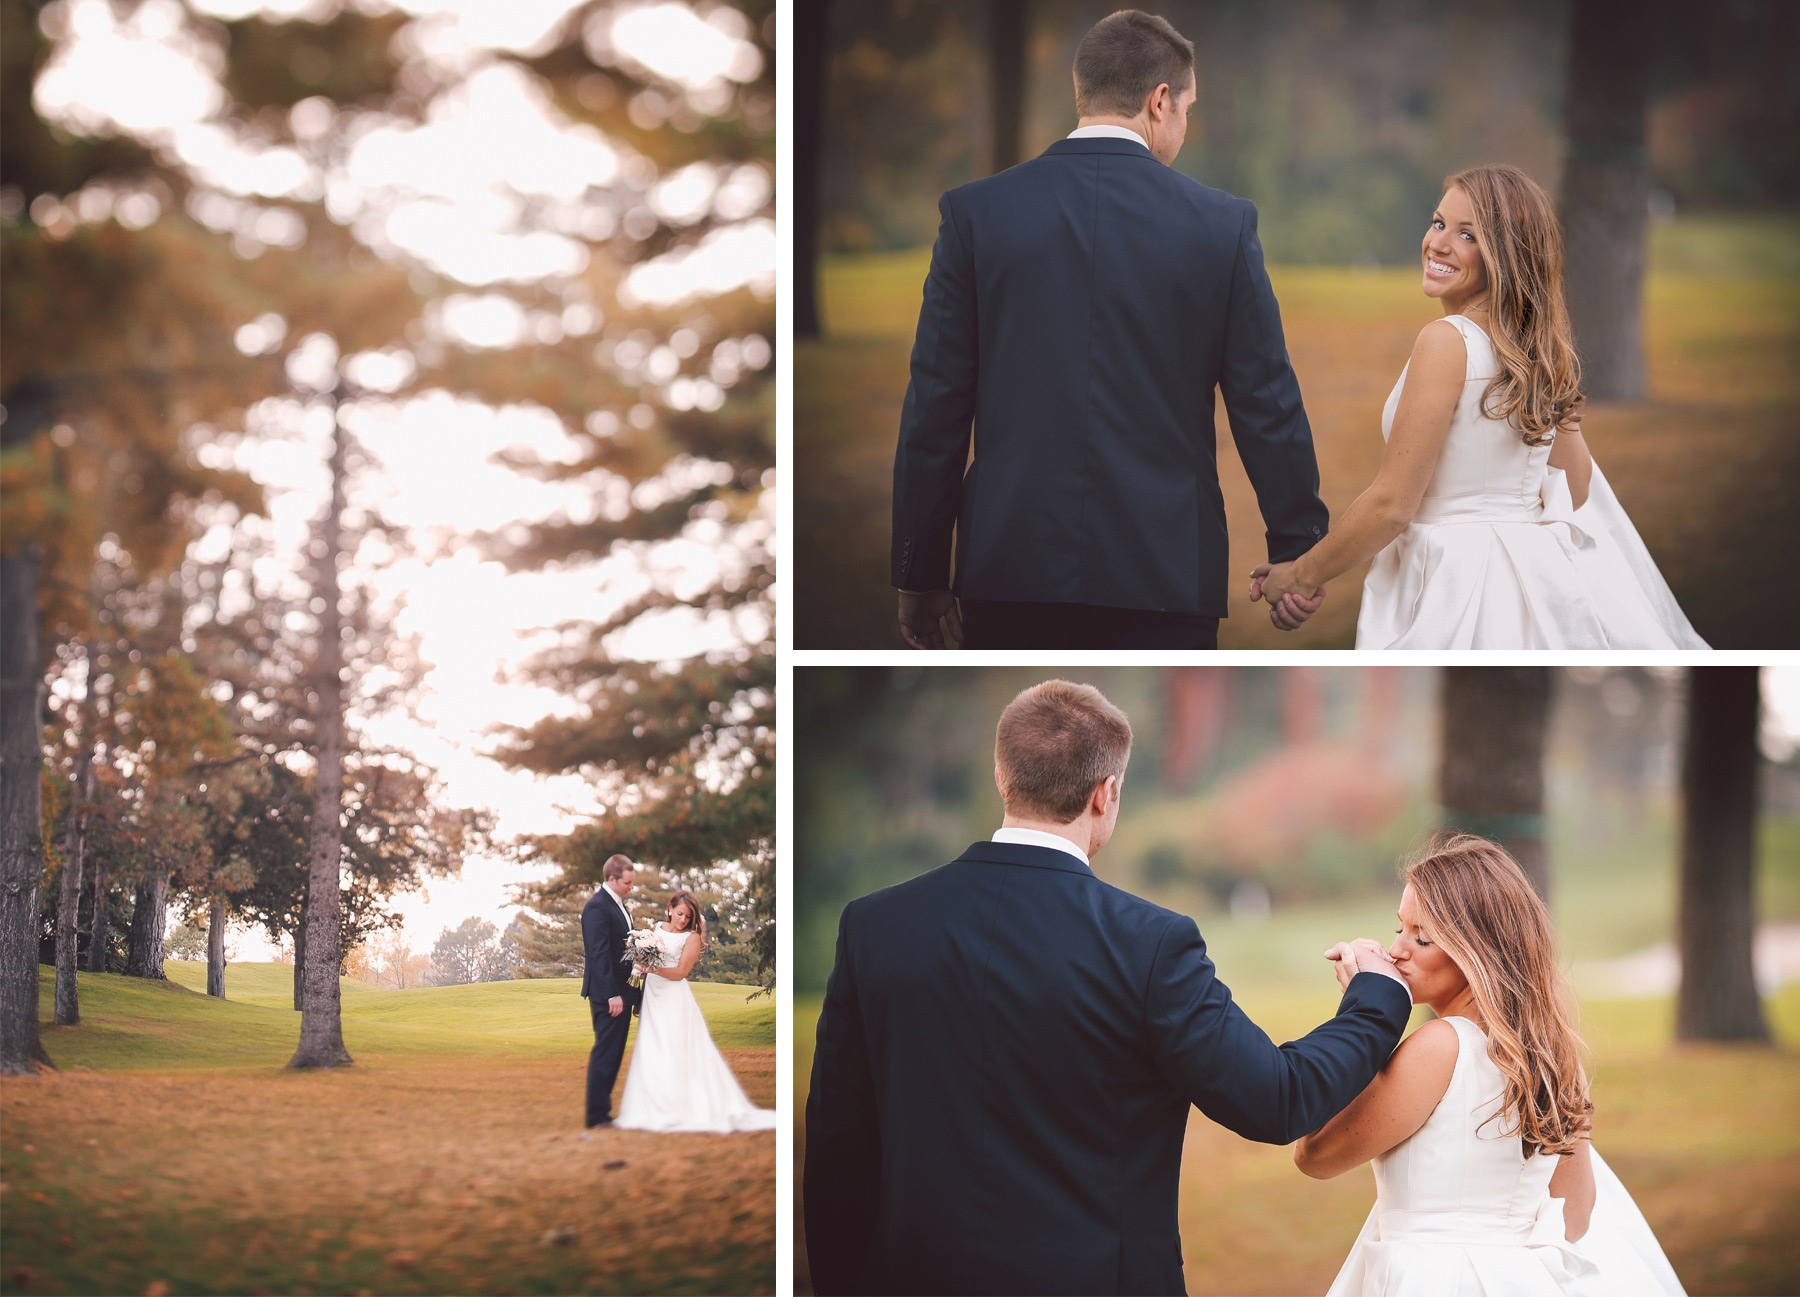 13-Minneapolis-Minnesota-Wedding-Photography-by-Vick-Photography-Woodhill-Country-Club-Golf-Course-Autumn-Fall-Colors-Elle-and-Tyler.jpg